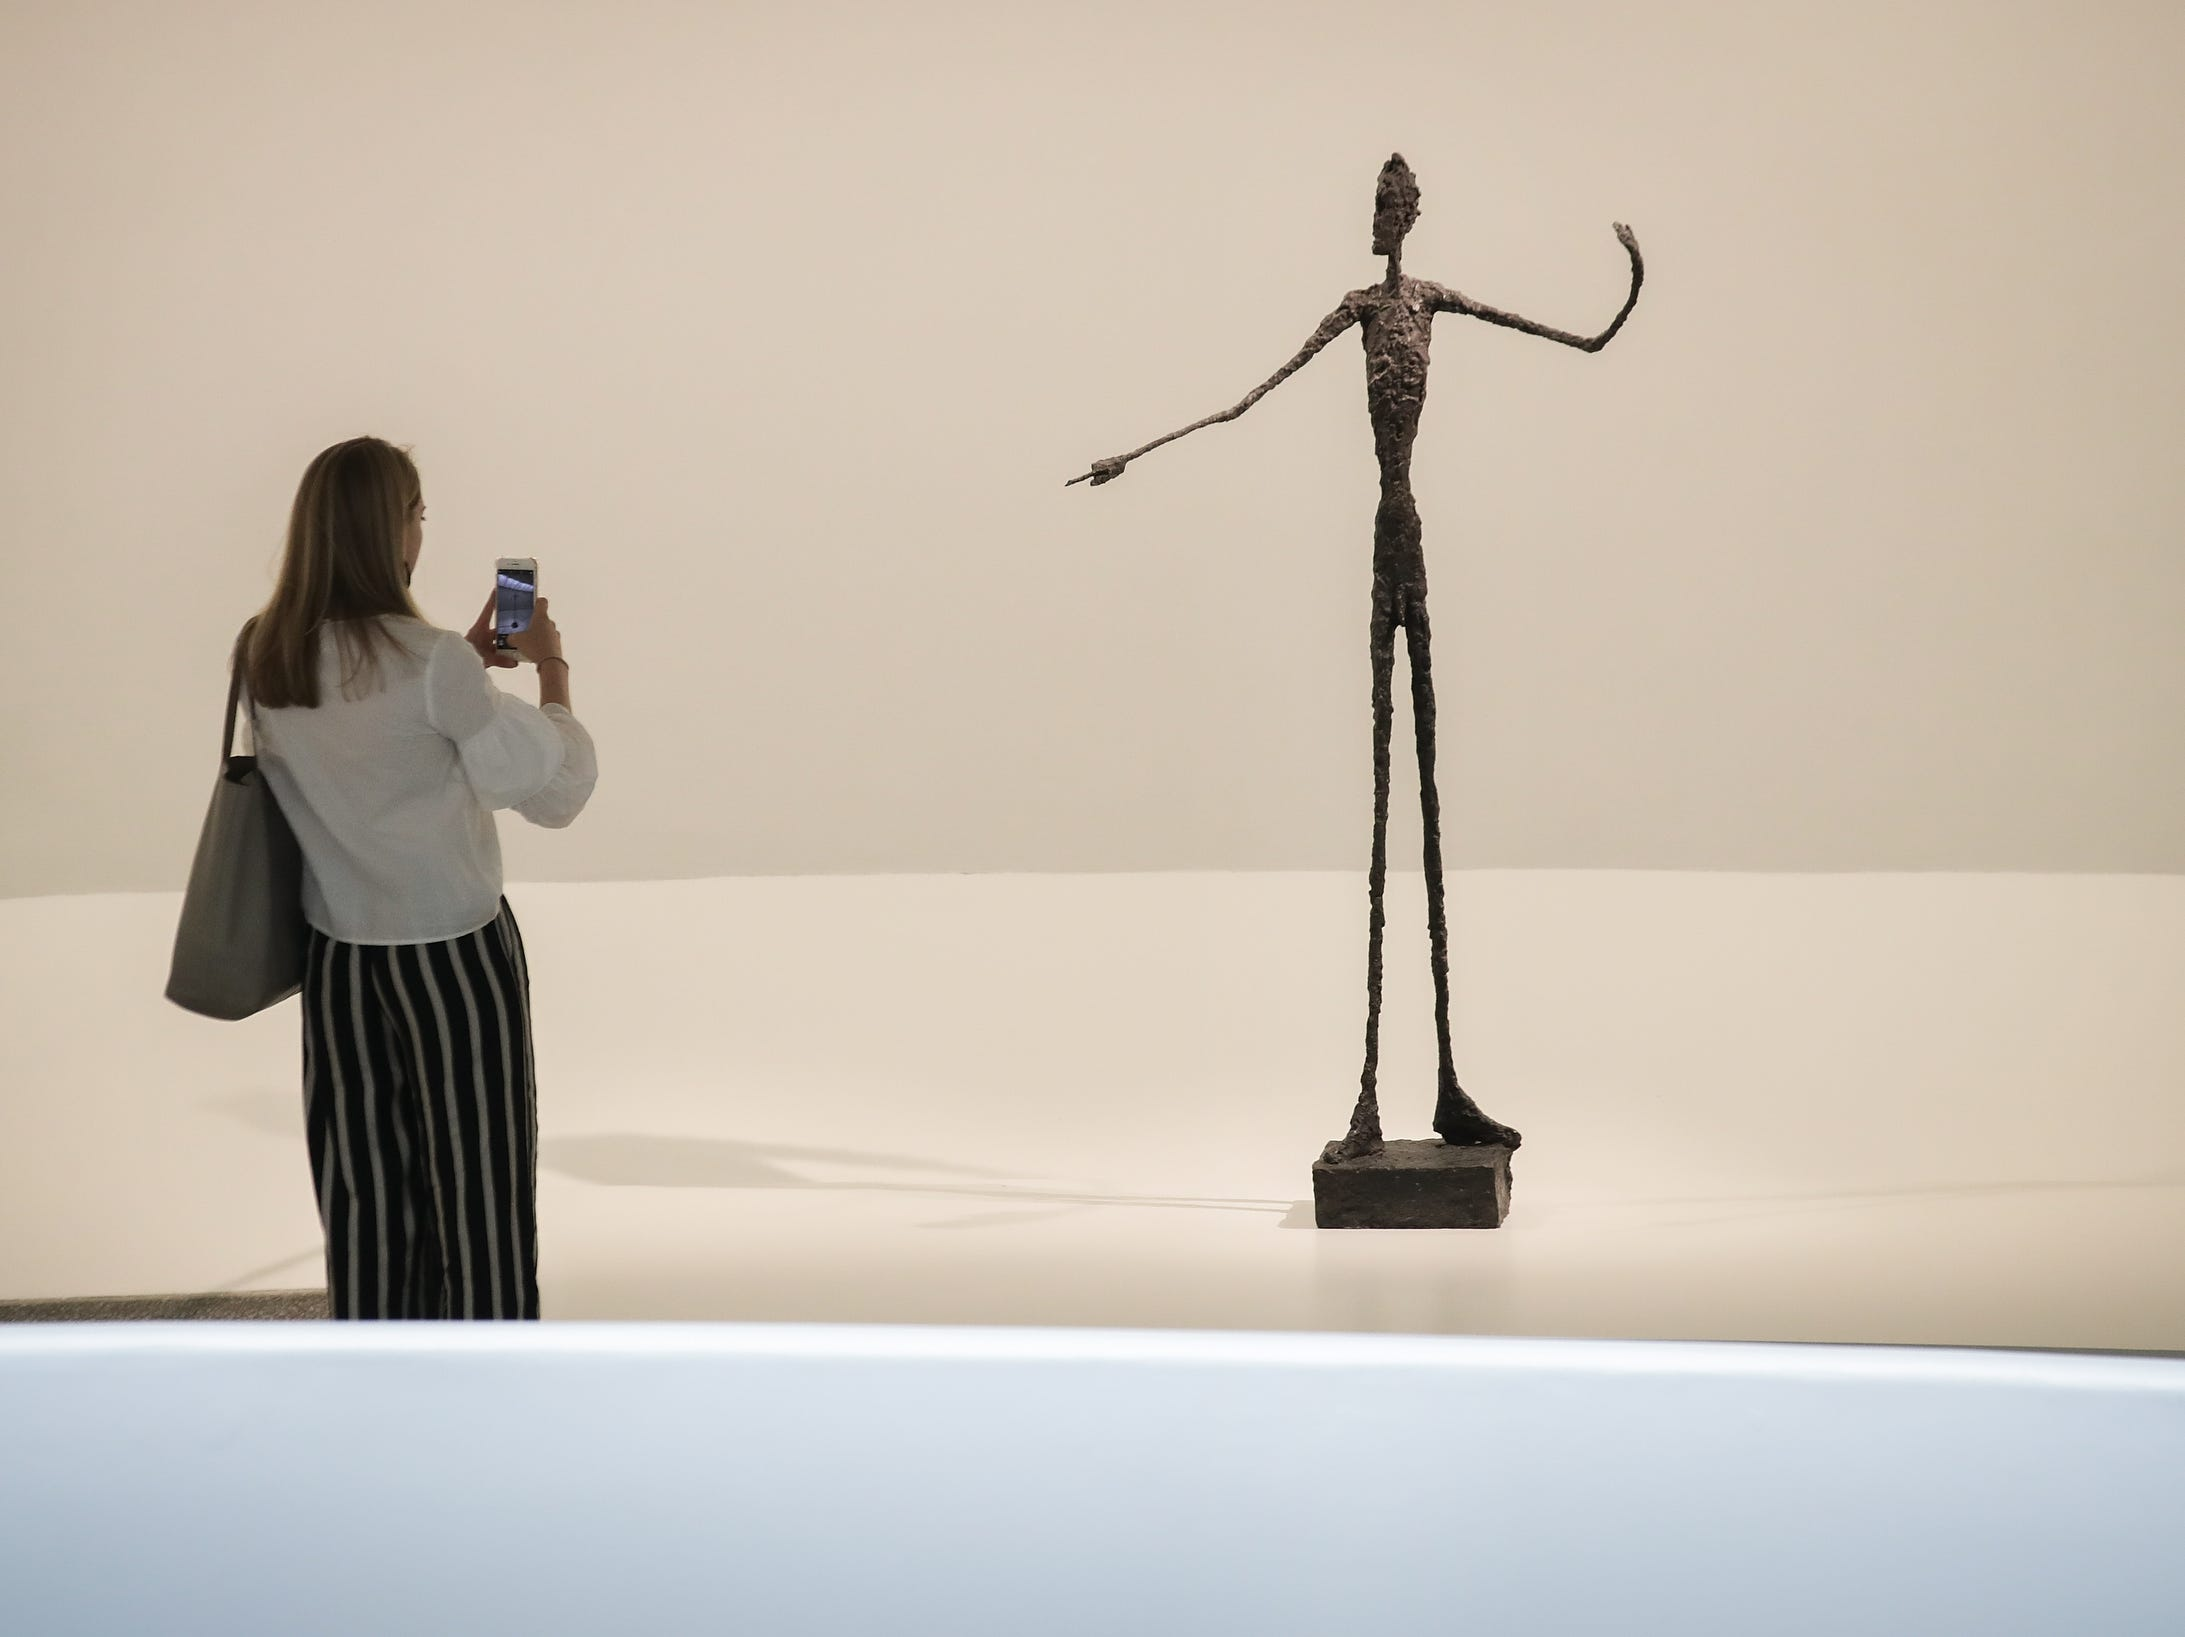 A woman stops and photographs 'Man Pointing,' a 1947 bronze sculpture, at a retrospective exhibition of work by Swiss sculptor and artist Alberto Giacometti at the Guggenheim Museum, June 7, 2018 in New York. With fees, Christie's auction house sold the sculpture for $141.3 million USD, on May 11, 2015.